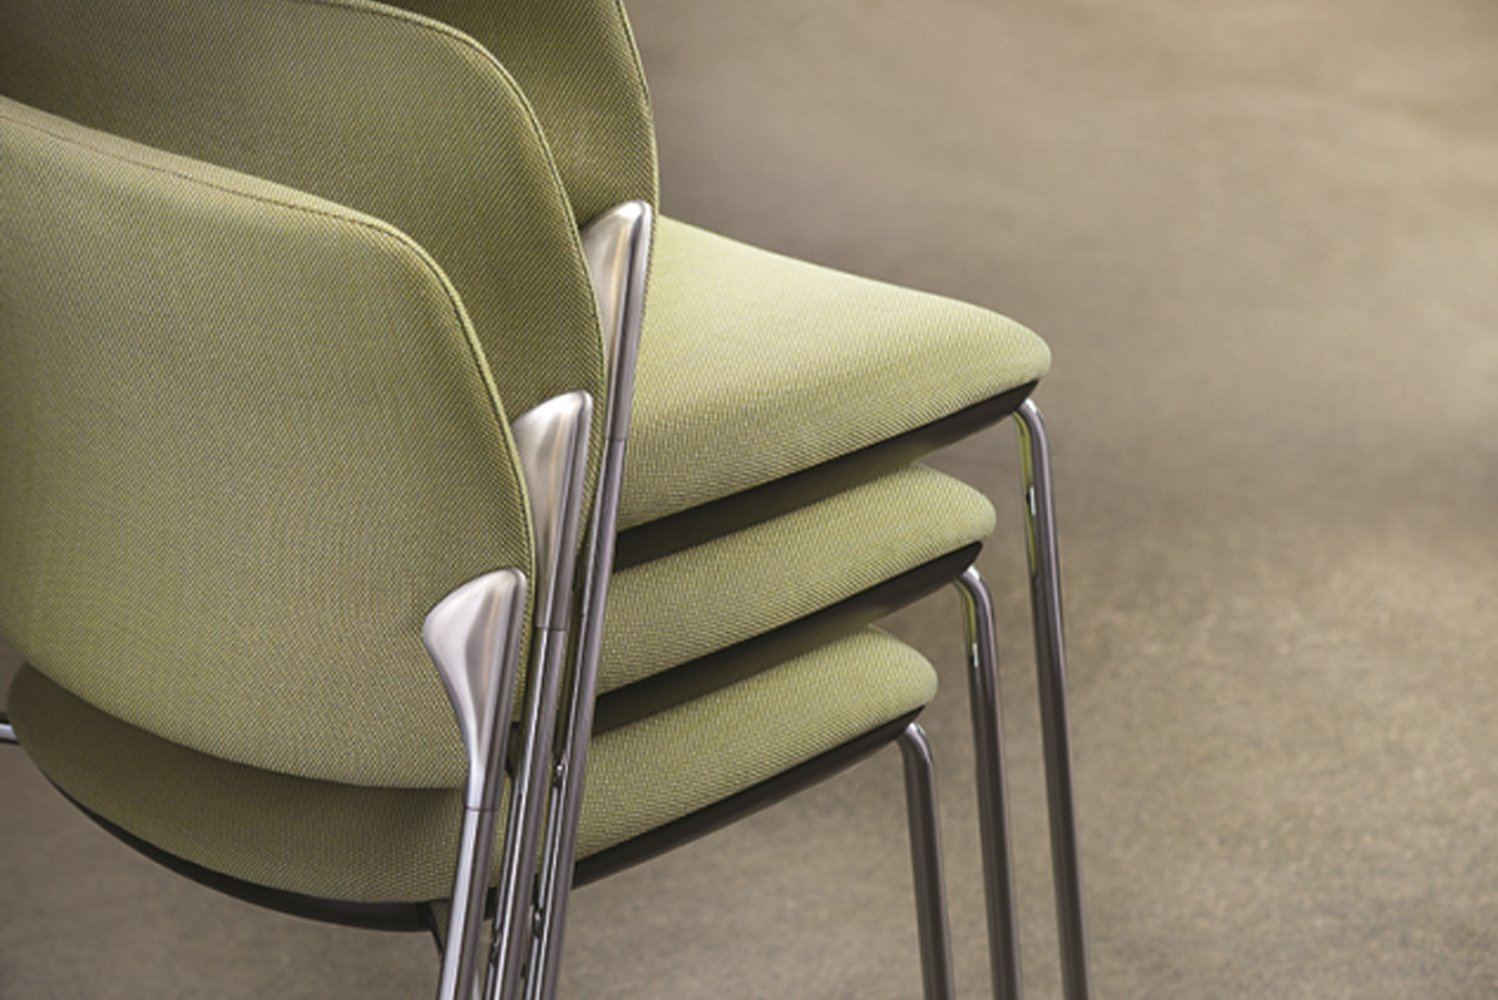 The chair serves as a remedy for design quandaries across the board with over 85 custom variations available.